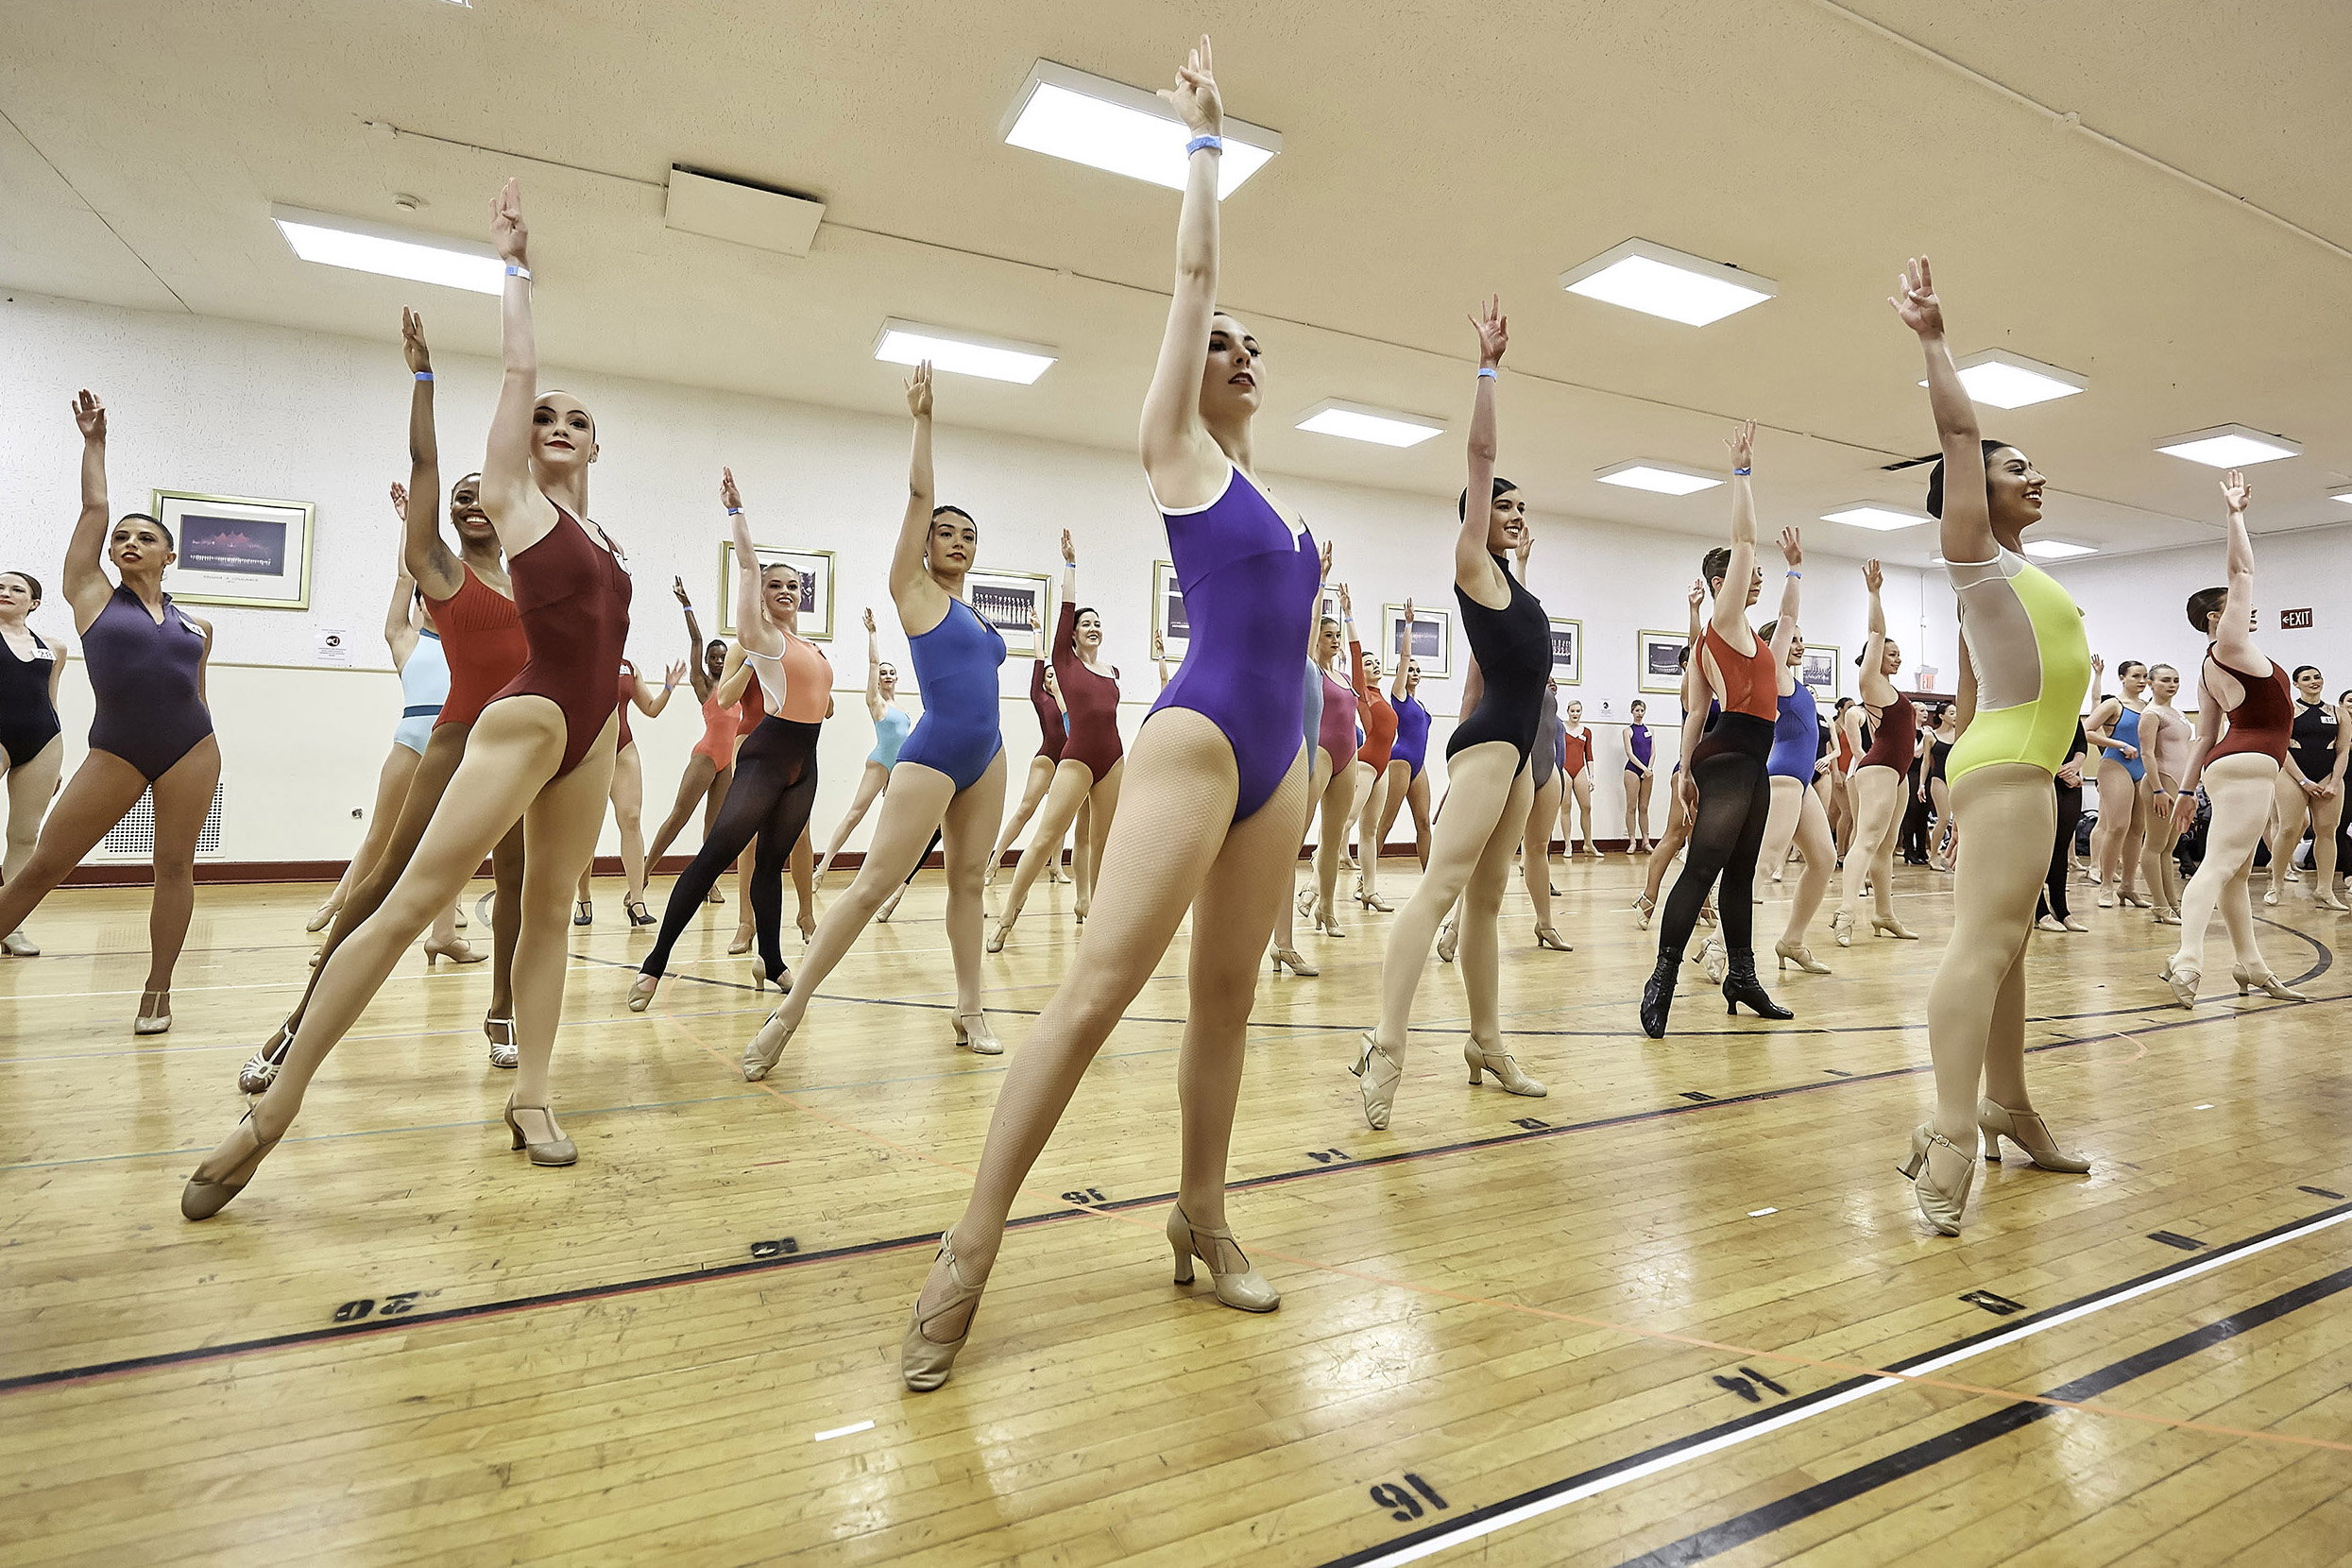 The Rockettes Race To Reverse Long History Of Excluding Black Women